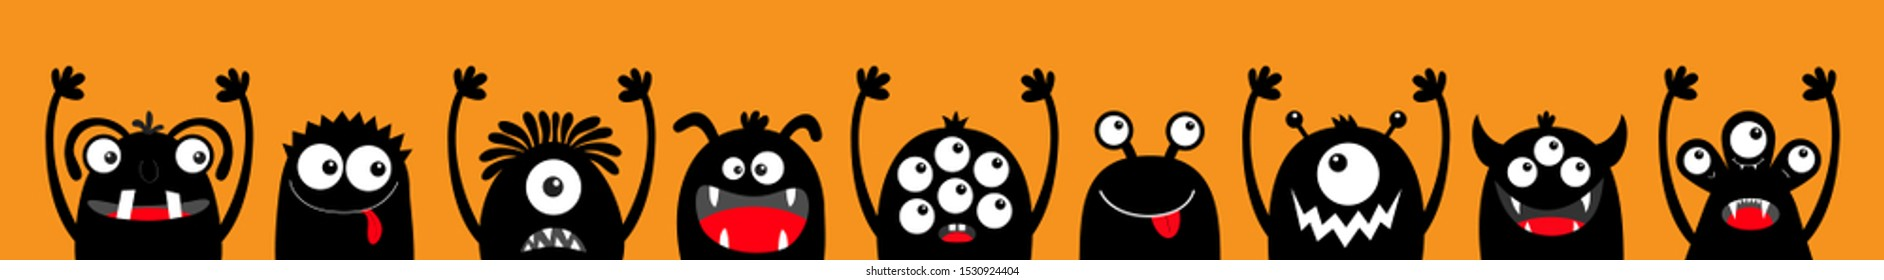 Happy Halloween. Monster black silhouette head face icon set line. Eyes, tongue, tooth fang, hands up. Cute cartoon kawaii scary funny baby character. Orange background Flat design Vector illustration